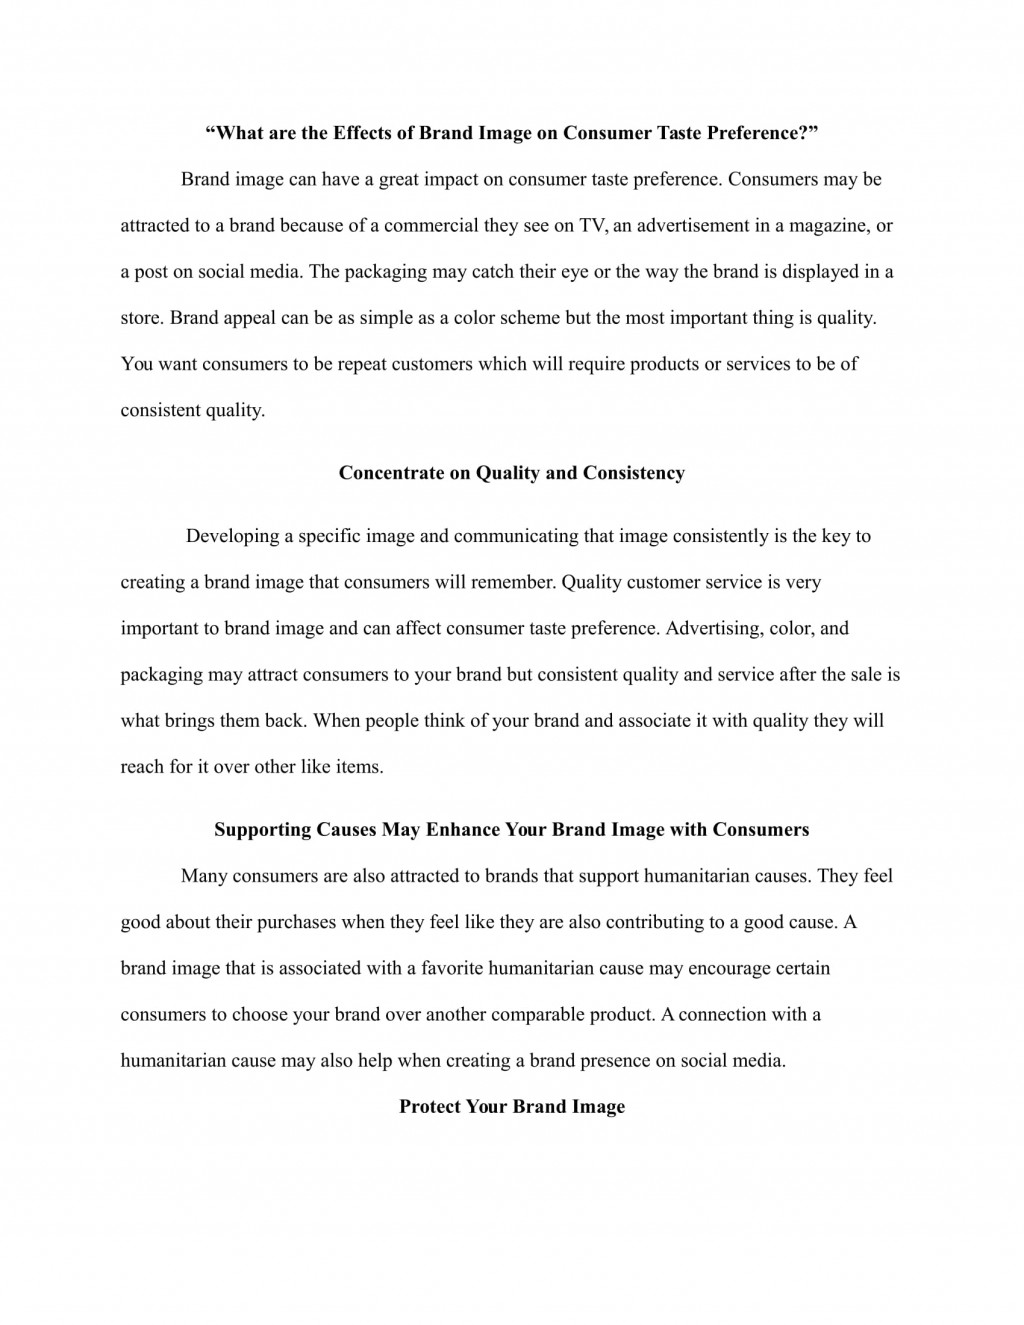 001 Expository Essay Samples Example Sample Impressive Topics Grade 5 O Level Essays For High School Students Large